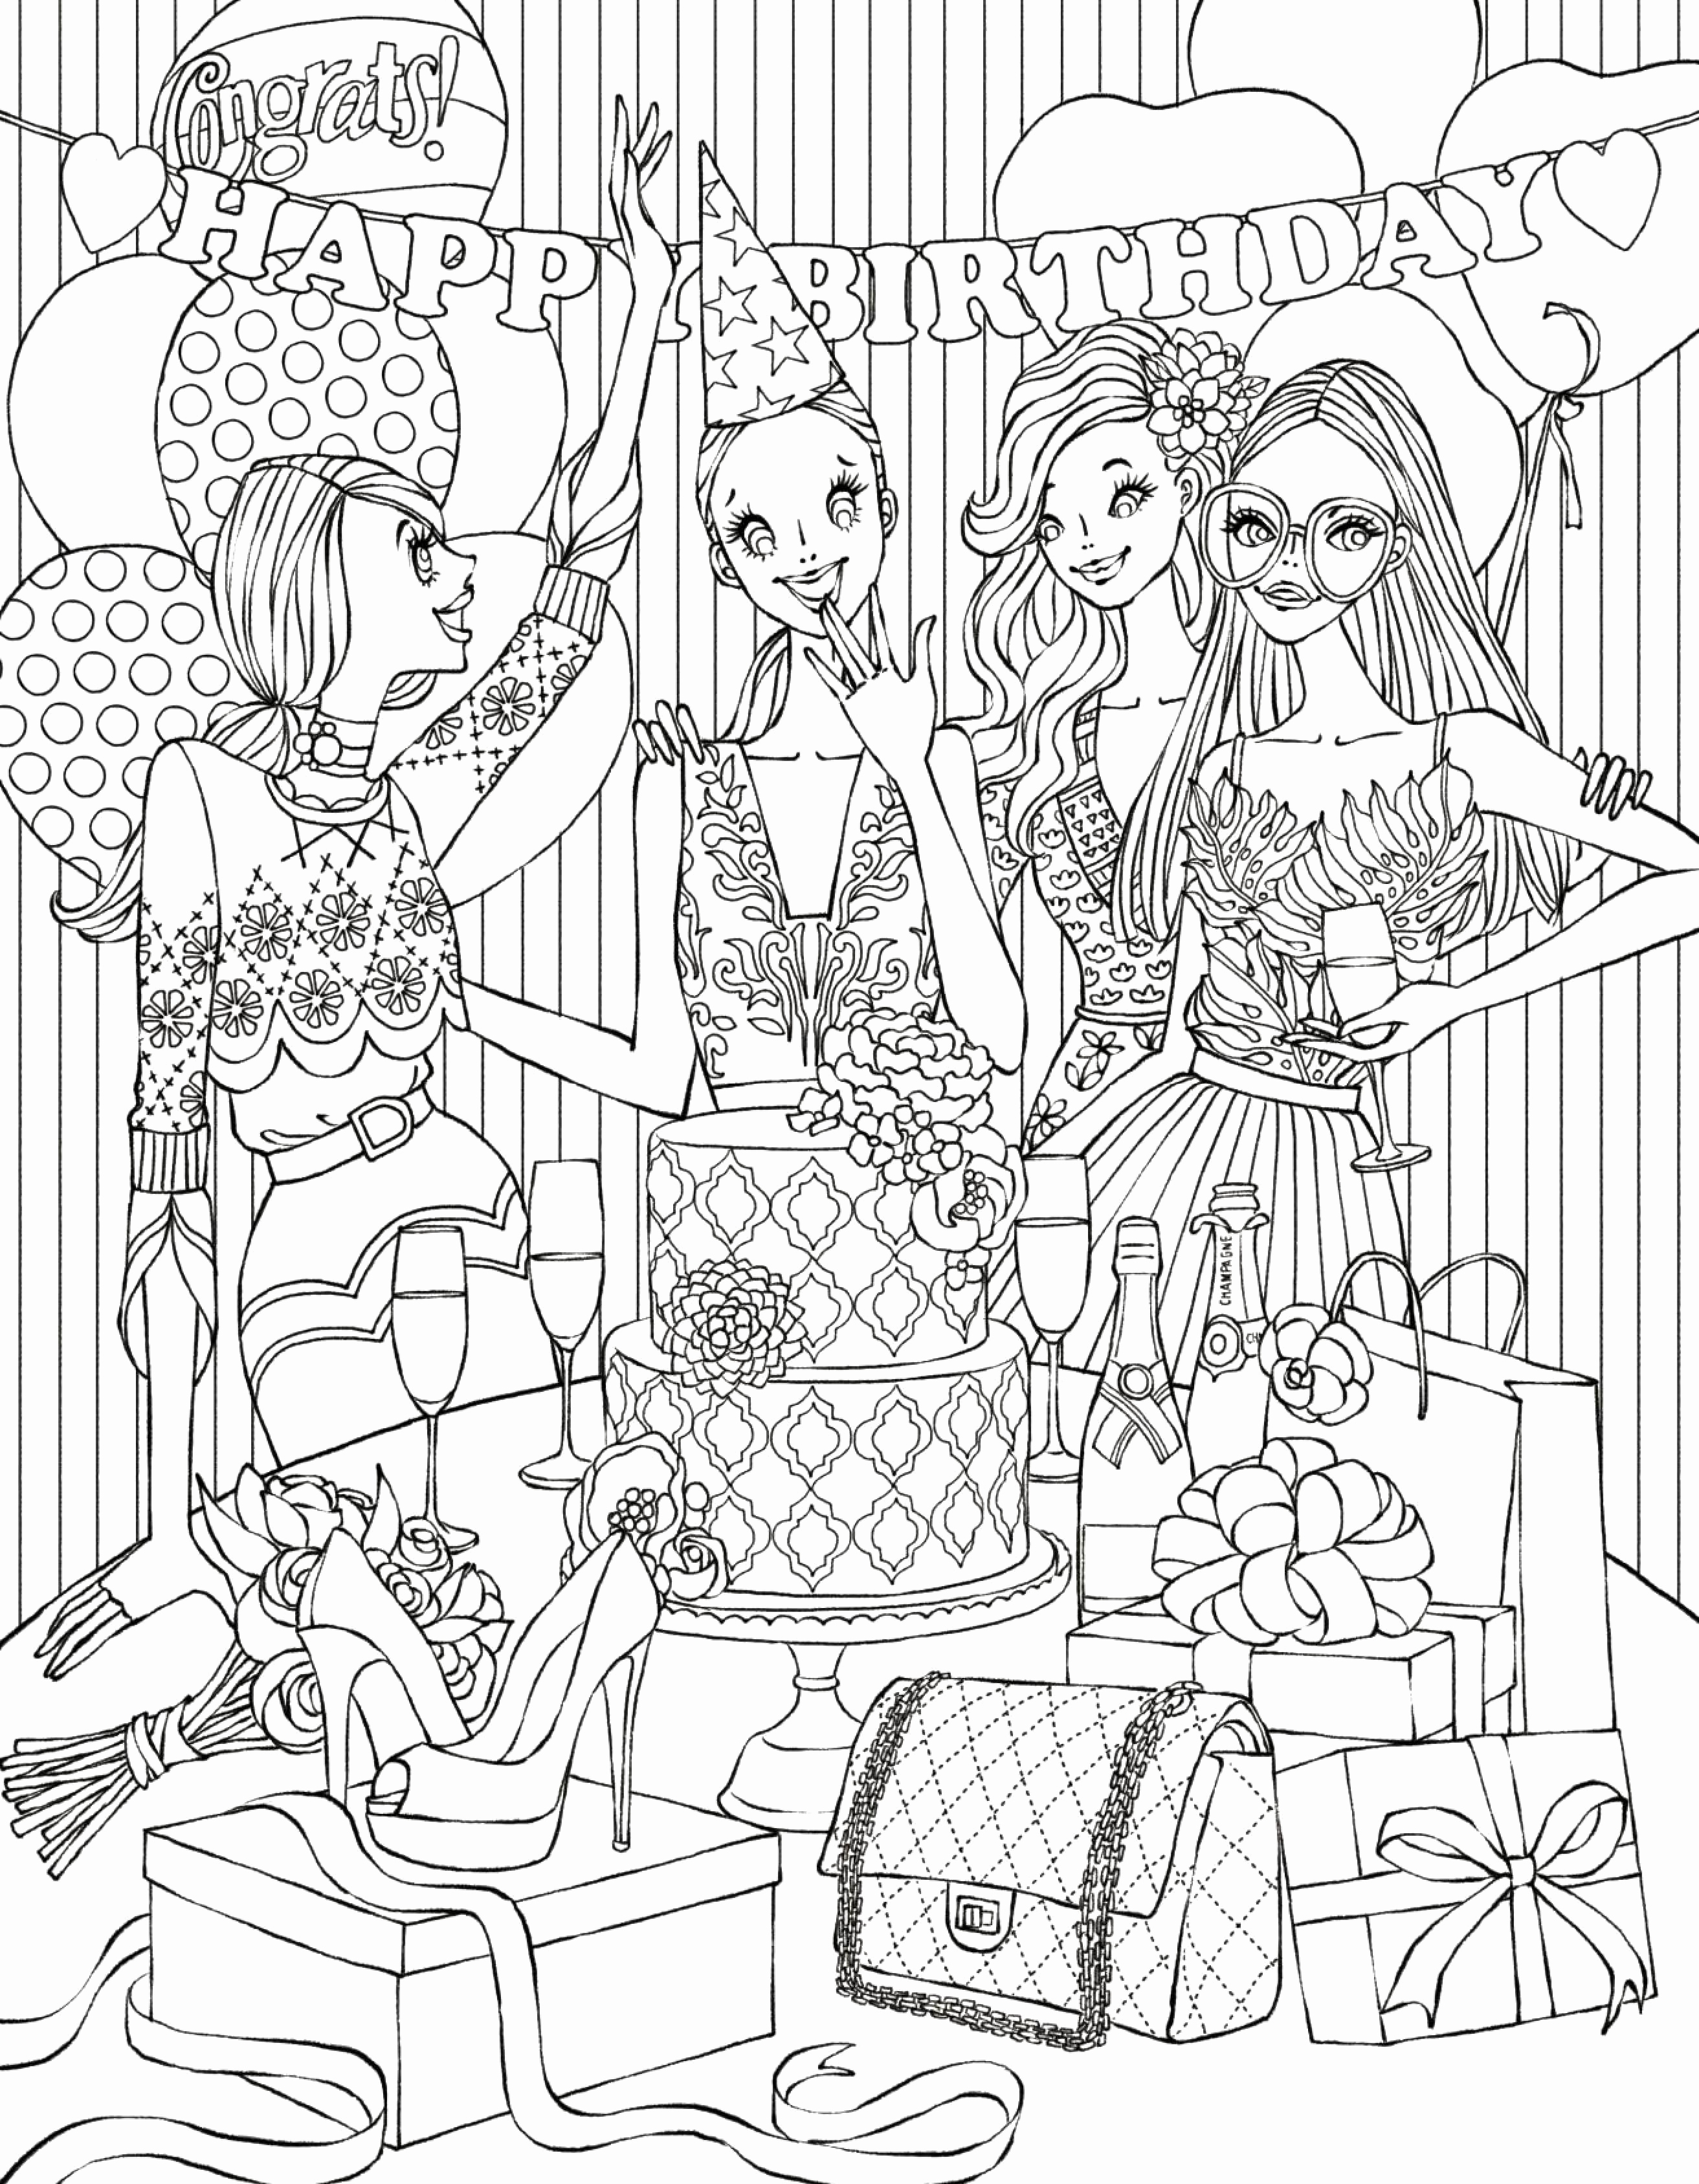 pooh coloring page beautiful 8 mystery coloring pages coloring page download of fred daphne scooby doo